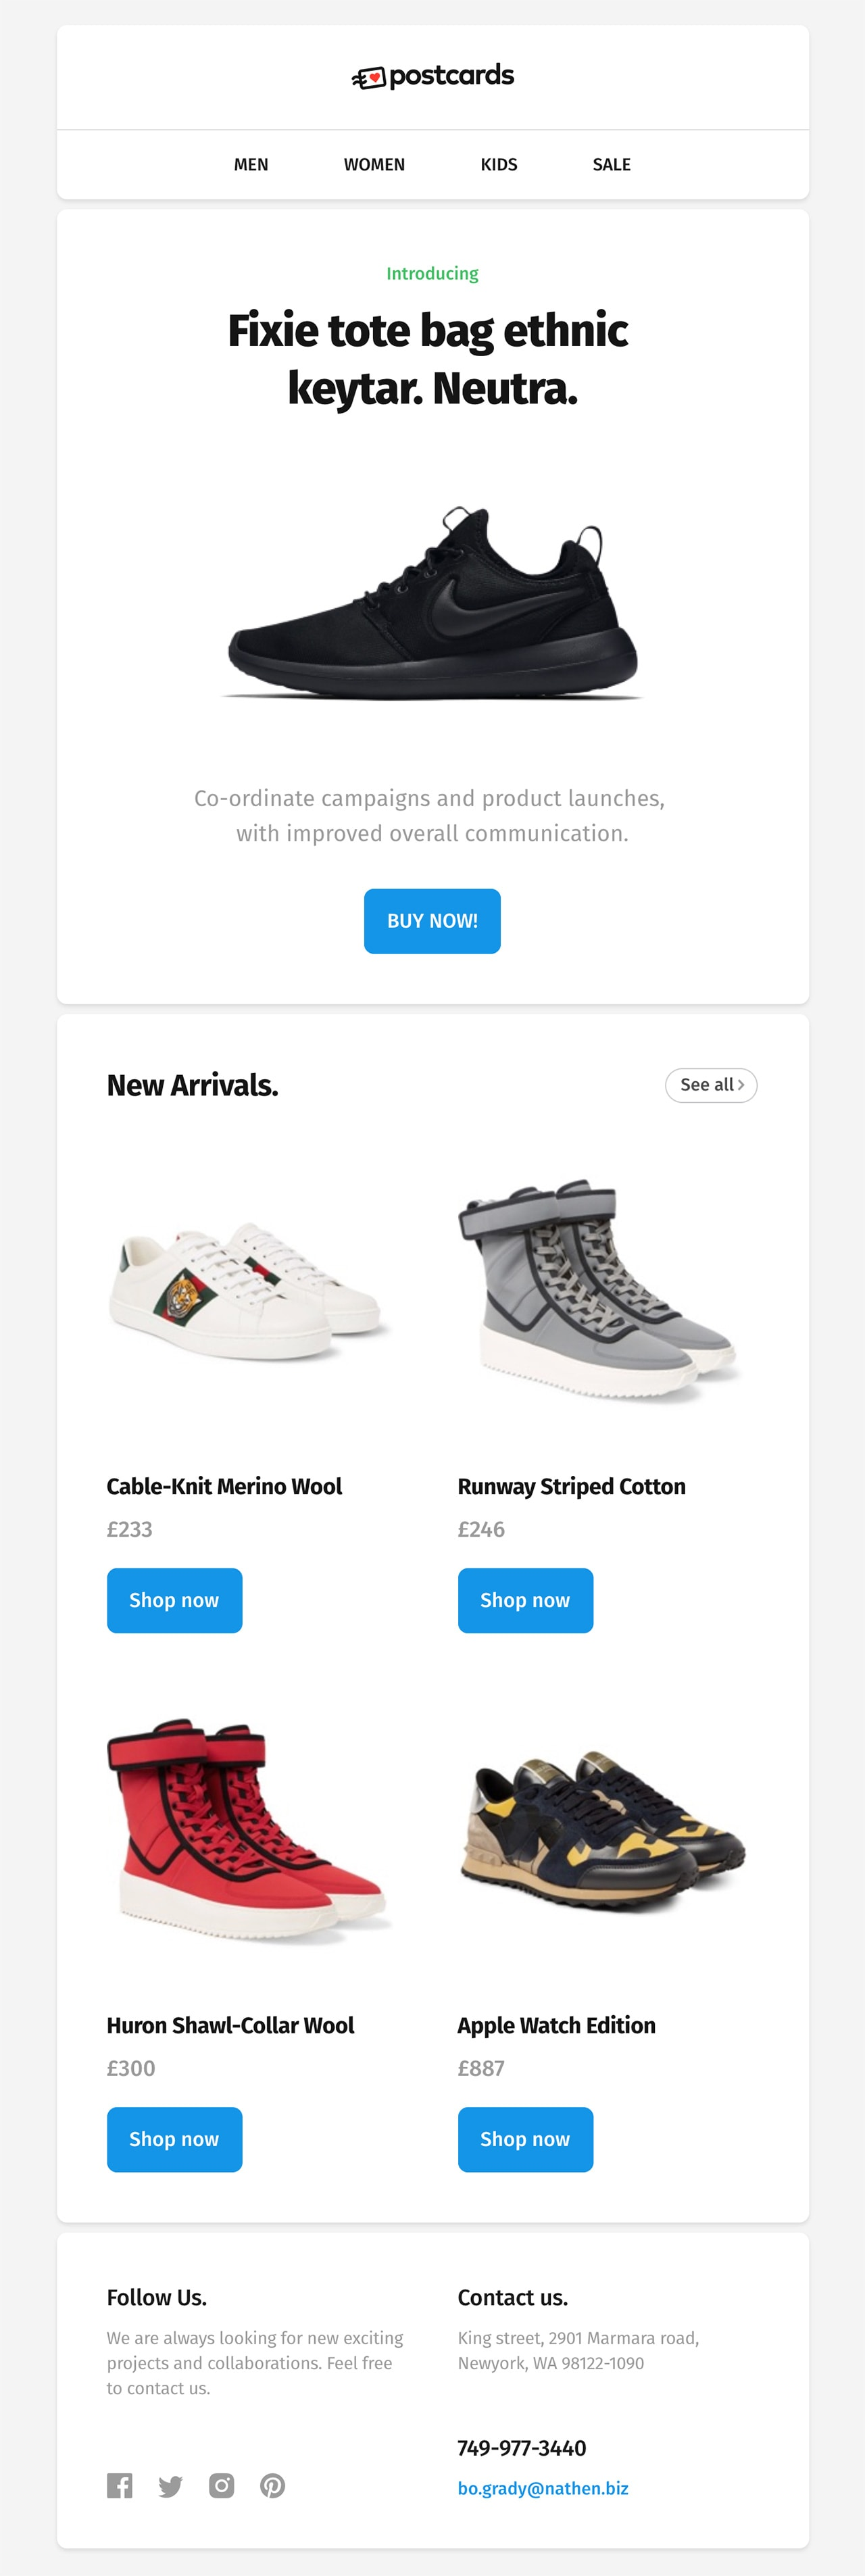 Free E Commerce Html Email Newsletter Template For Download